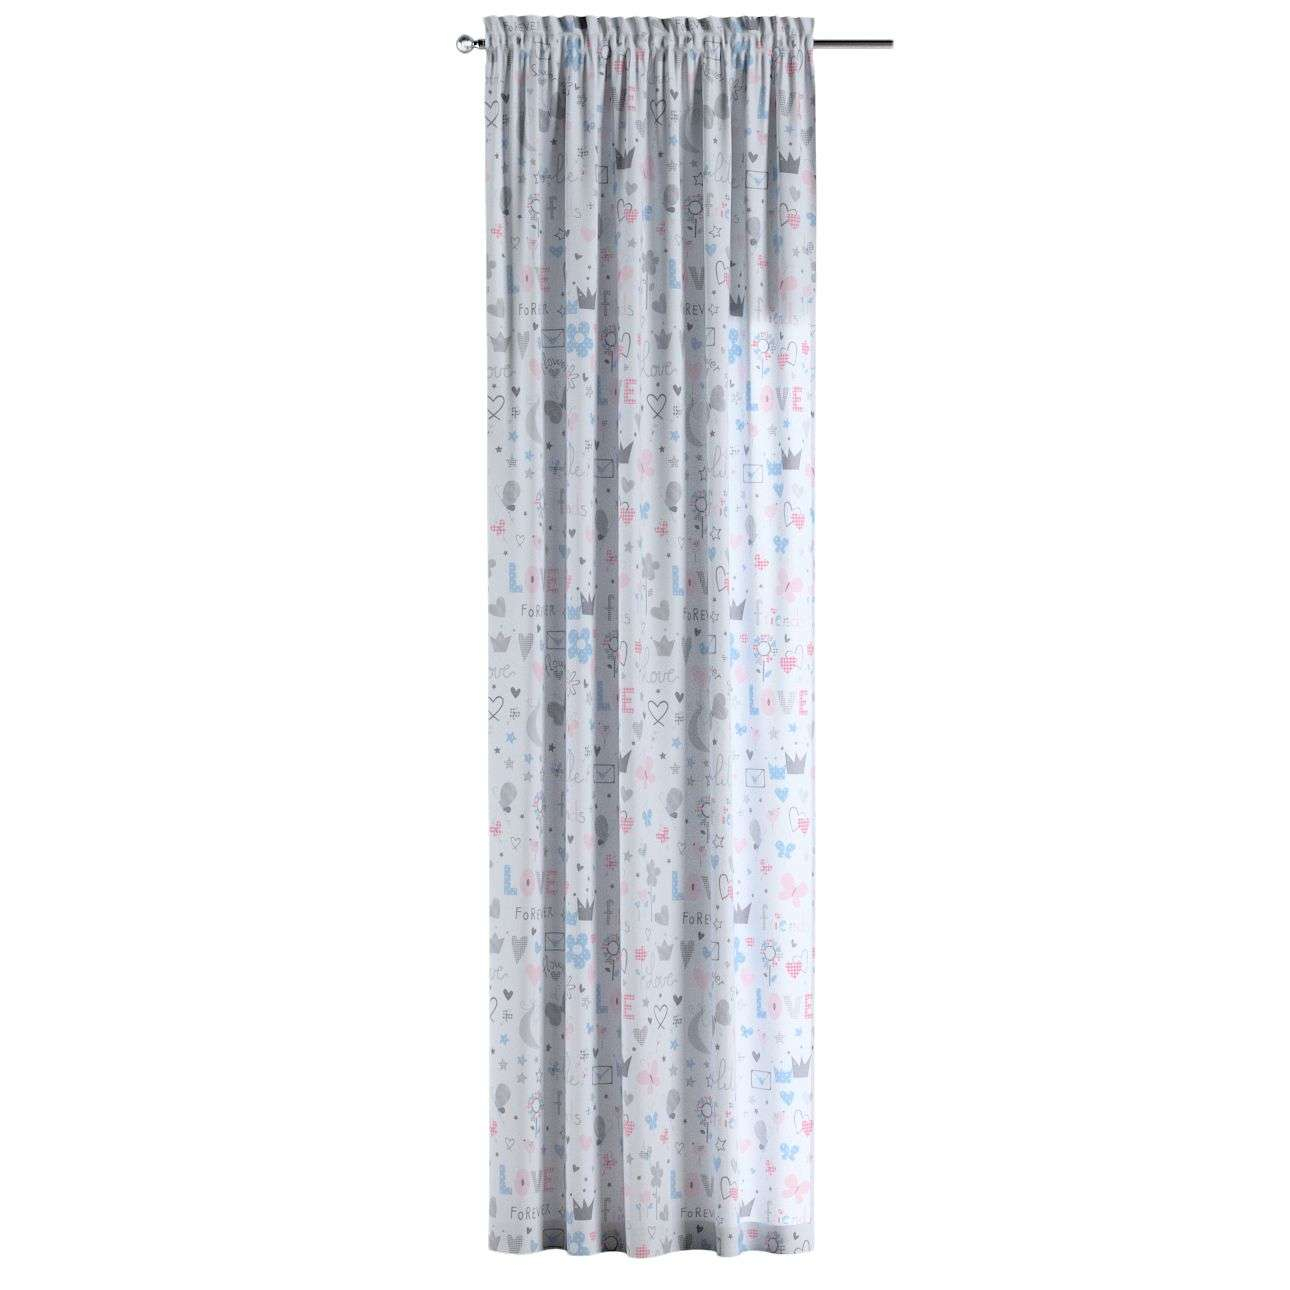 Slot and frill curtains in collection Little World, fabric: 141-27